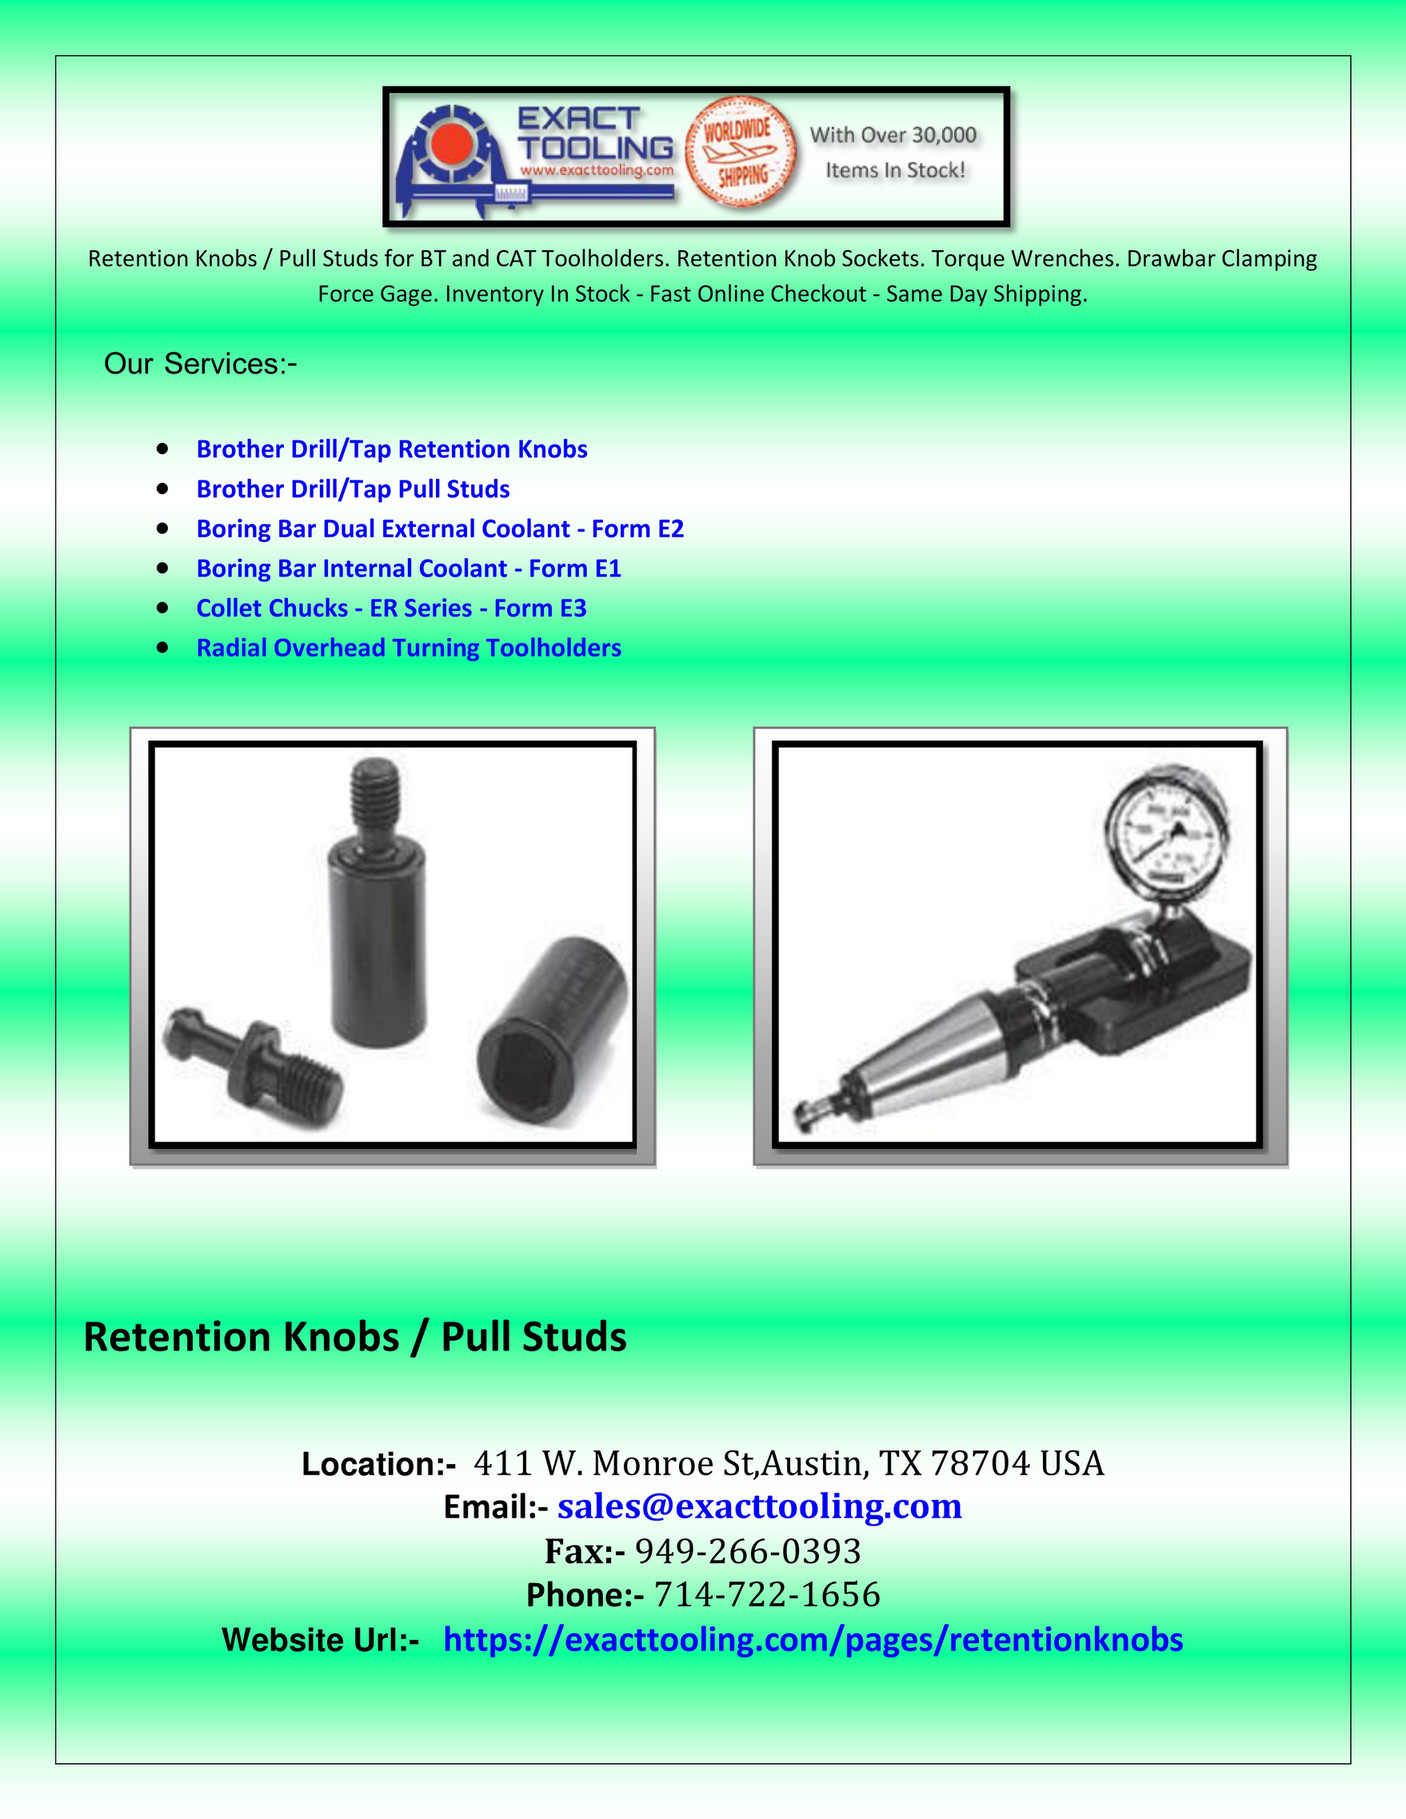 seo - Brother Drill Tap Retention Knobs - Page 1 - Created with